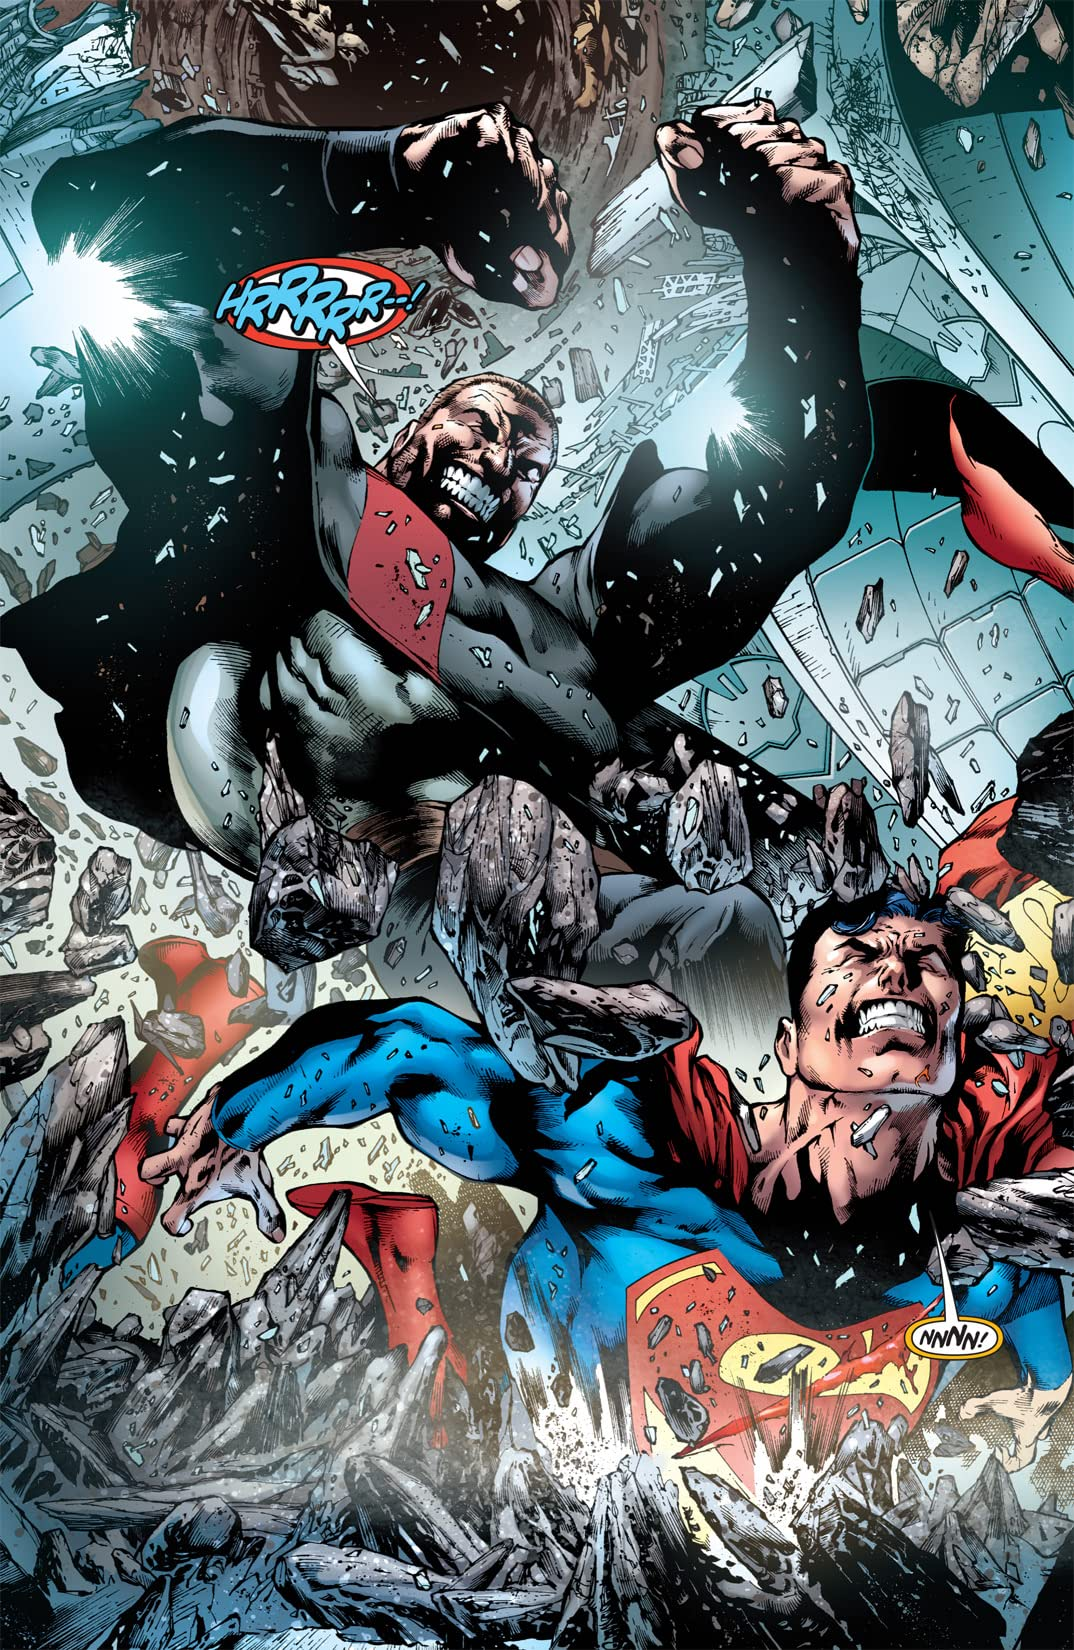 Superman: War of the Supermen #0 (of 0)